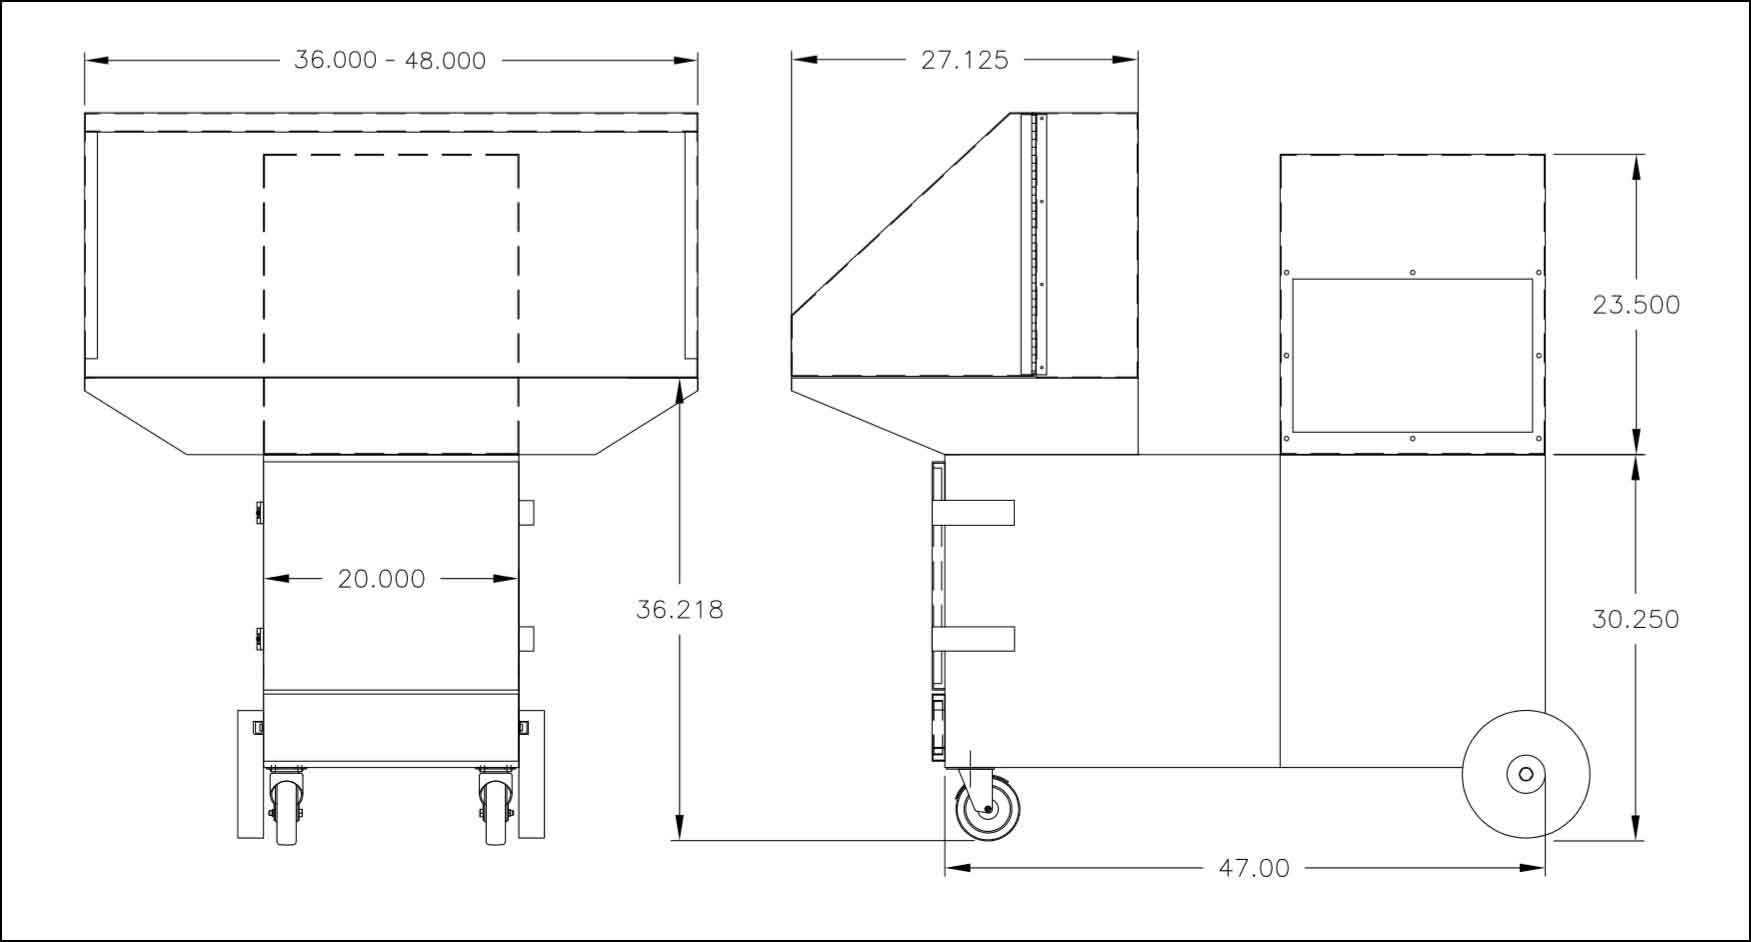 SPCB Technical Drawing